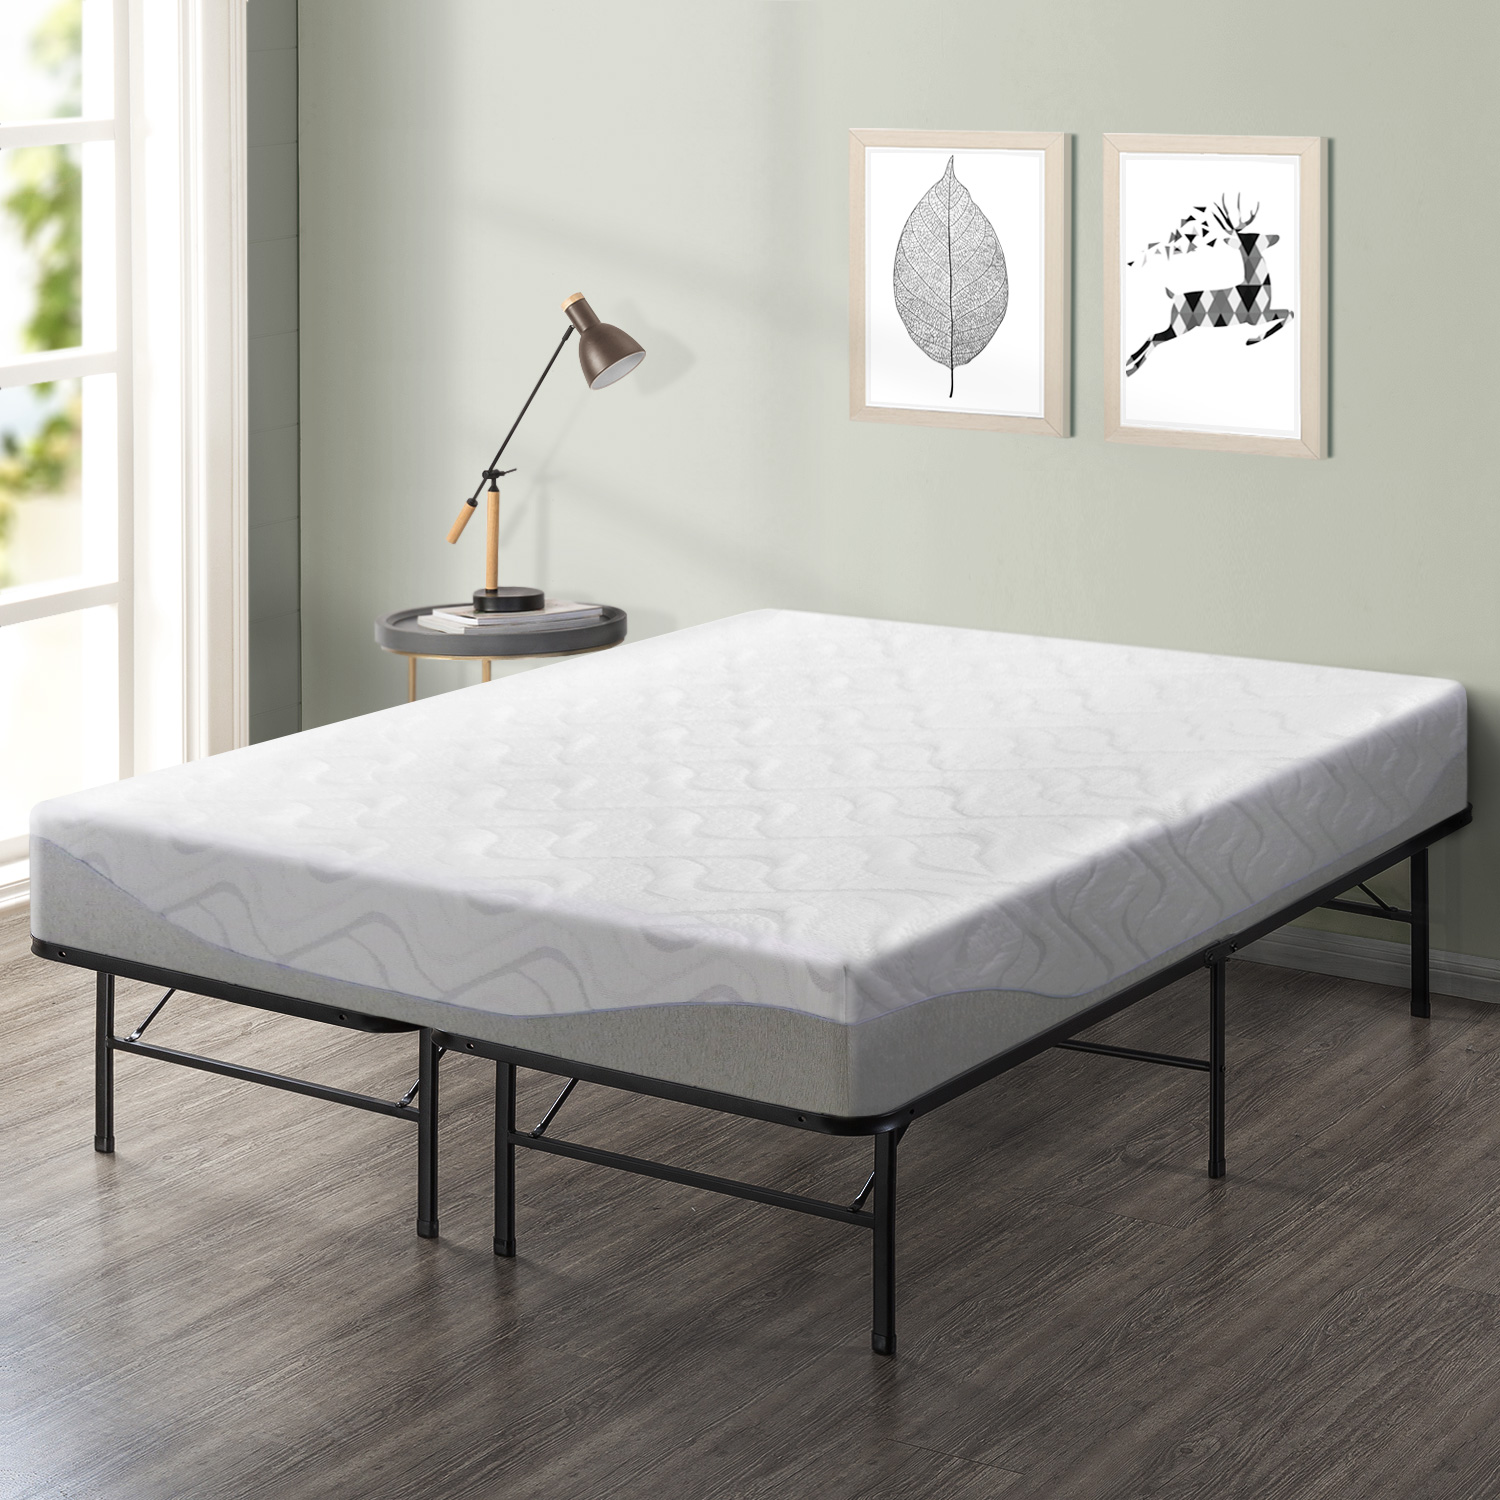 Best Price Mattress 9 Inch Gel-Infused Memory Foam Mattress and Innovative Platform Metal Bed Frame Set